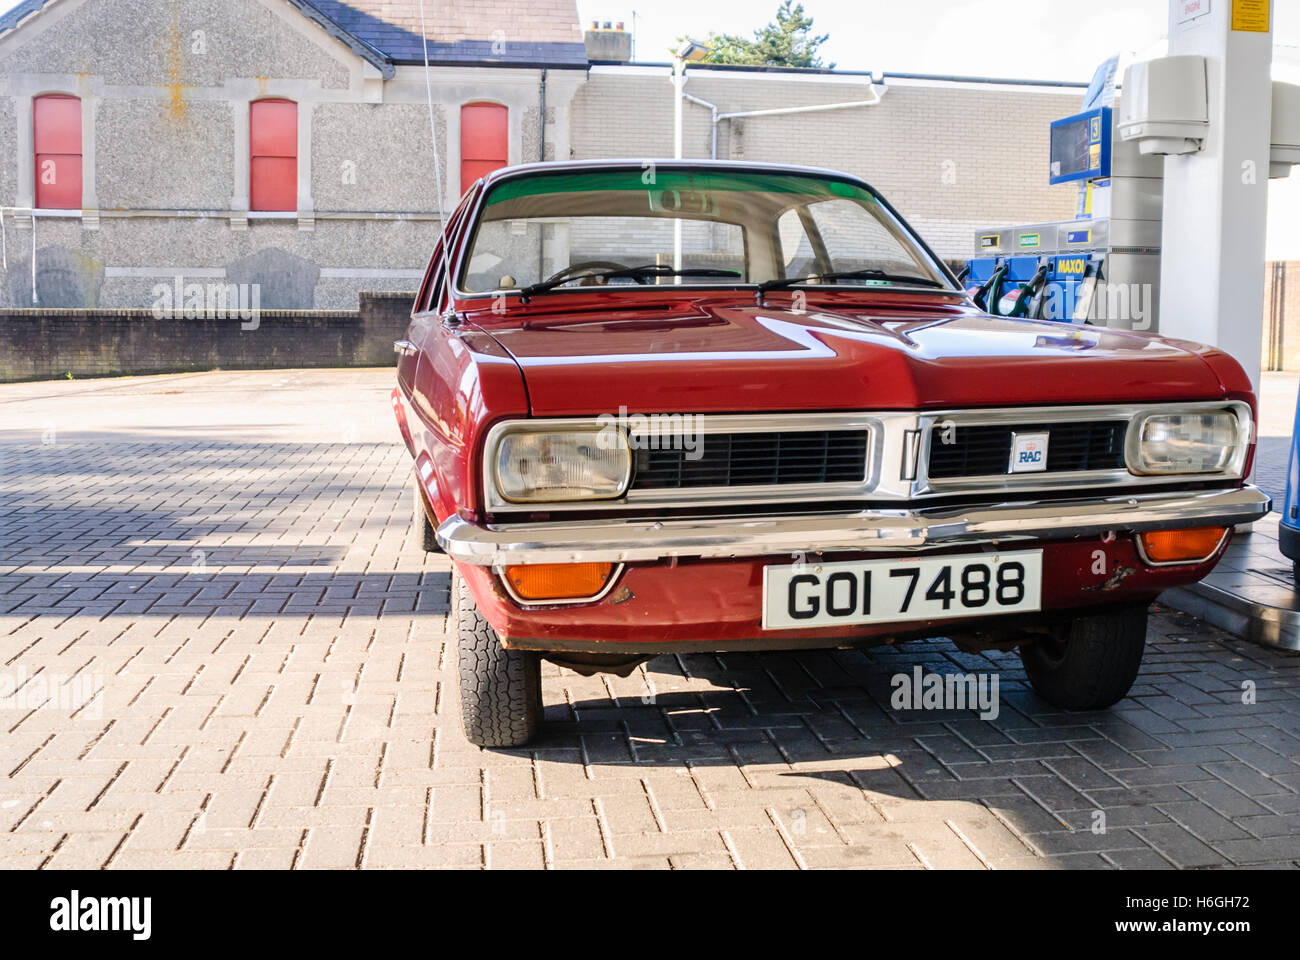 Red Vauxhall Viva HC parked at a petrol station. - Stock Image